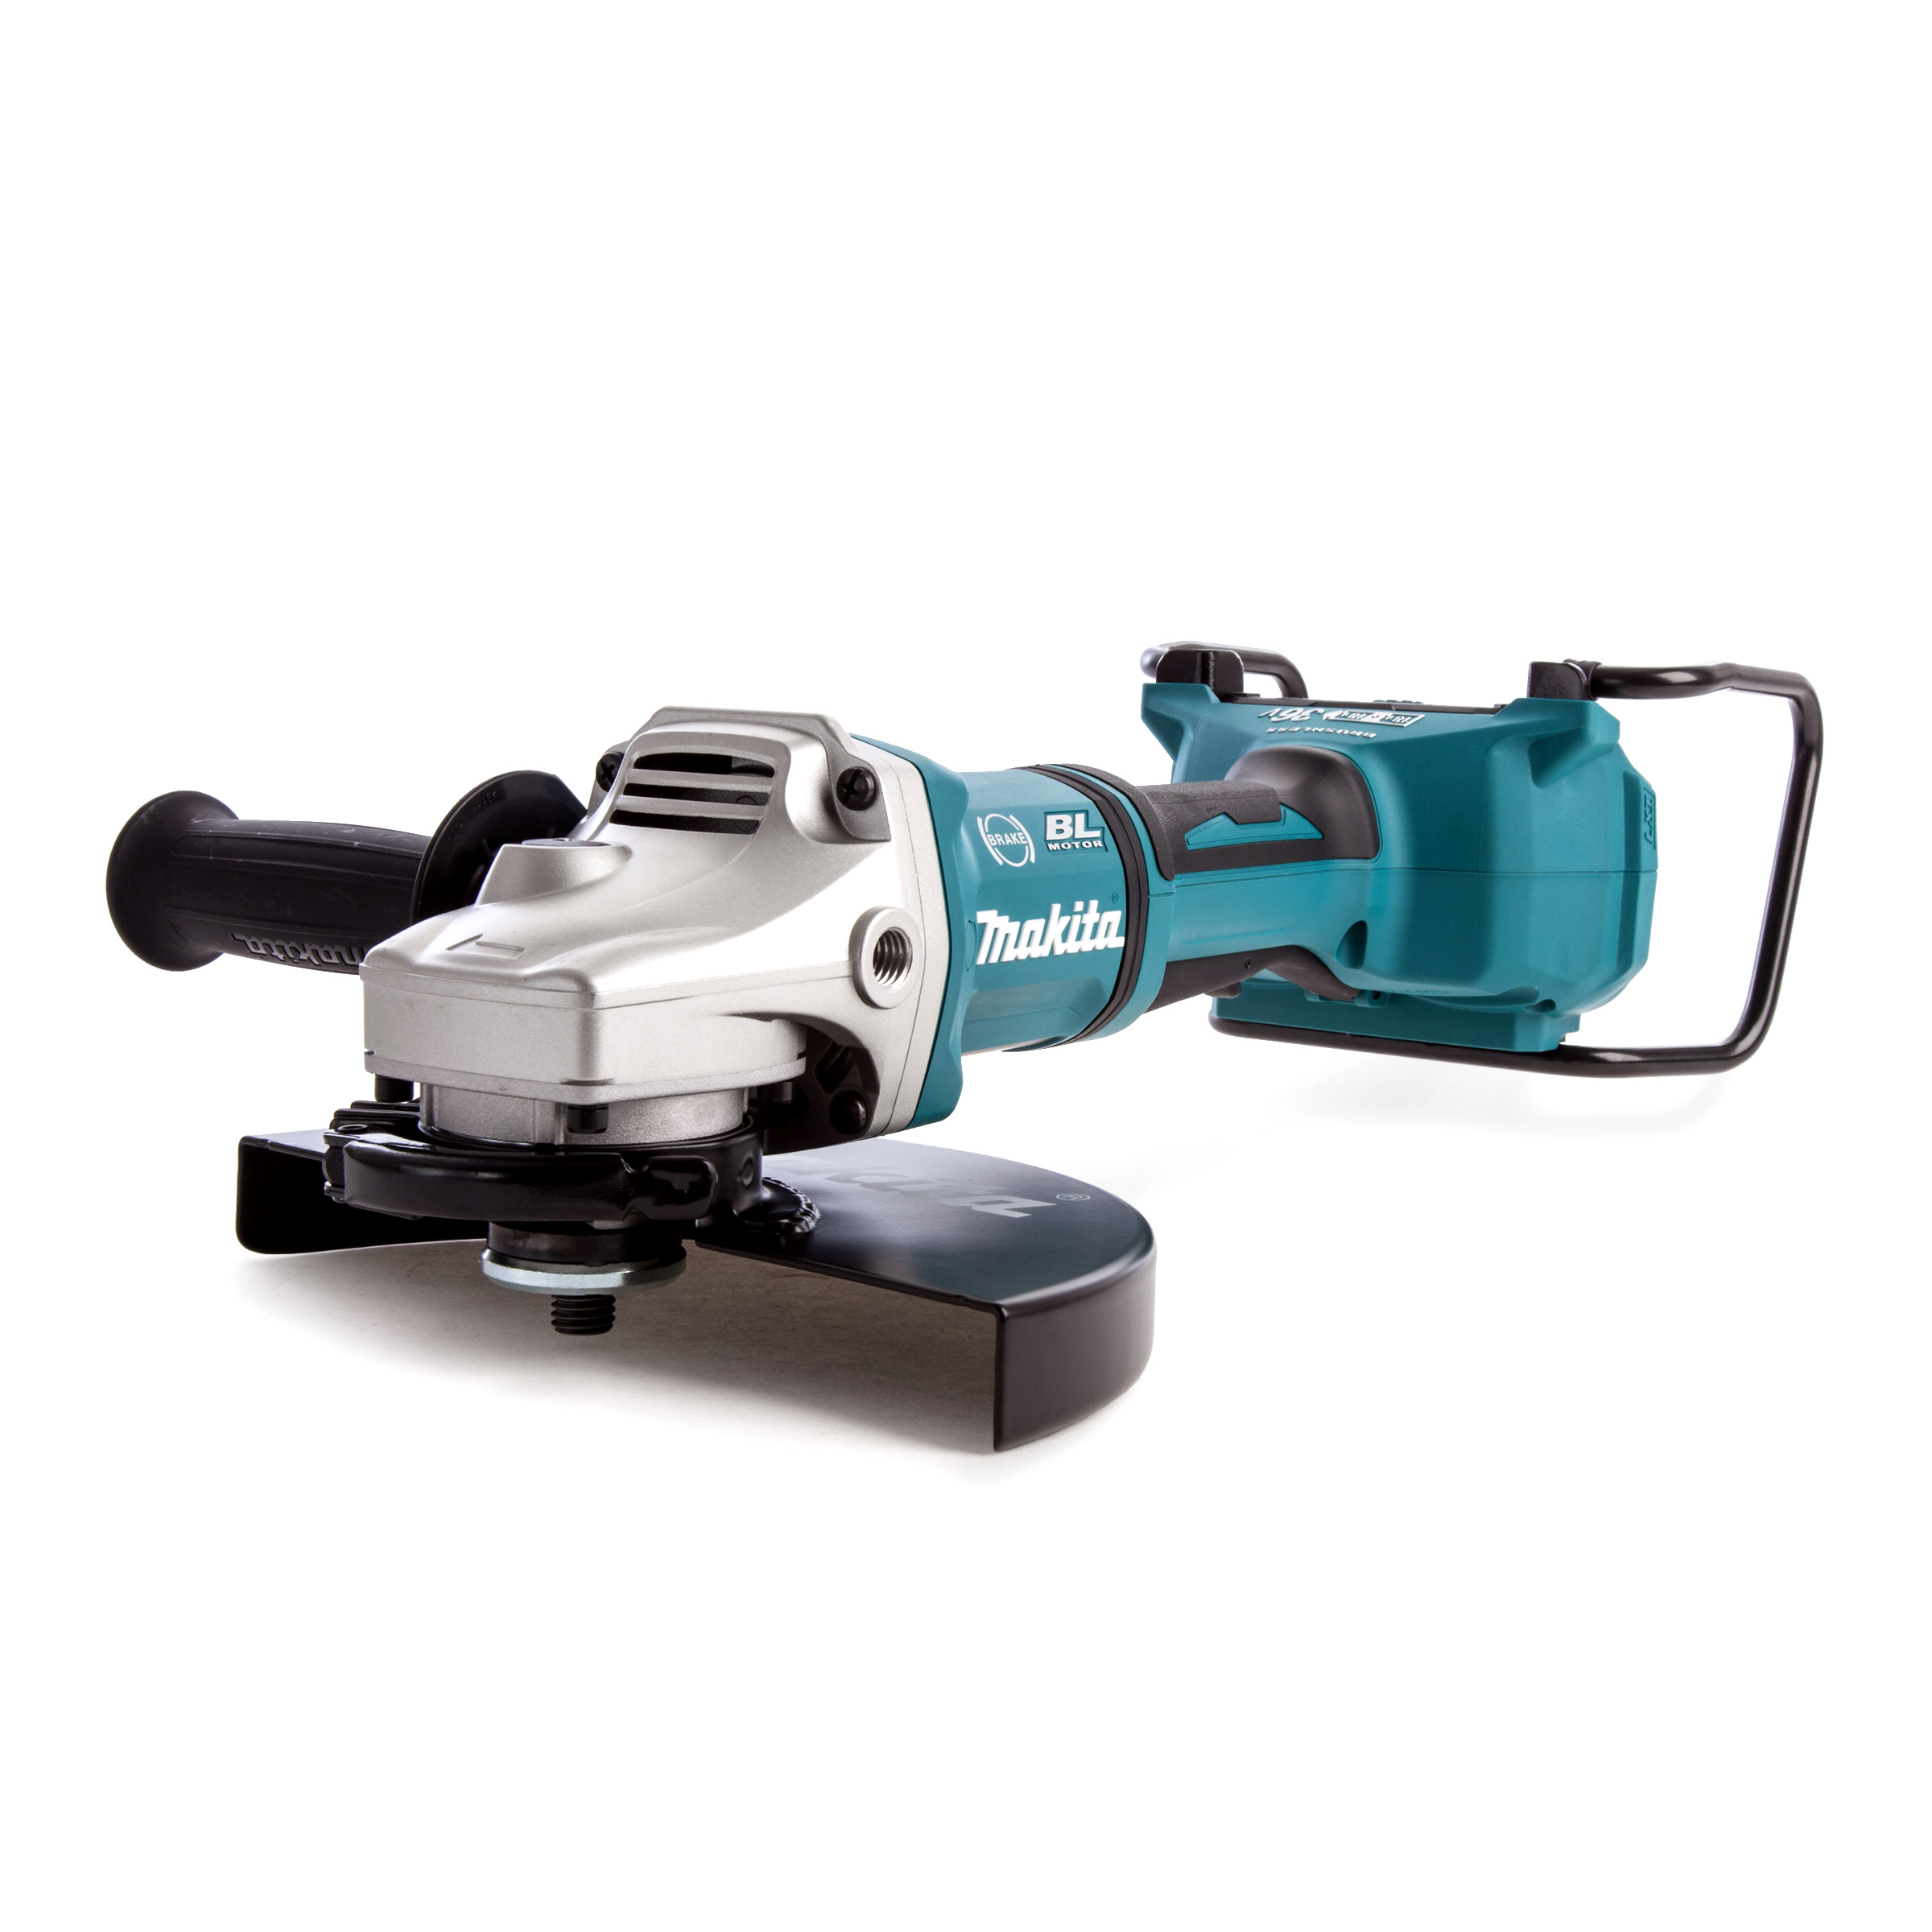 Makita DGA900 36V (Twin 18V) Brushless 230mm Angle Grinder LXT - Body Only